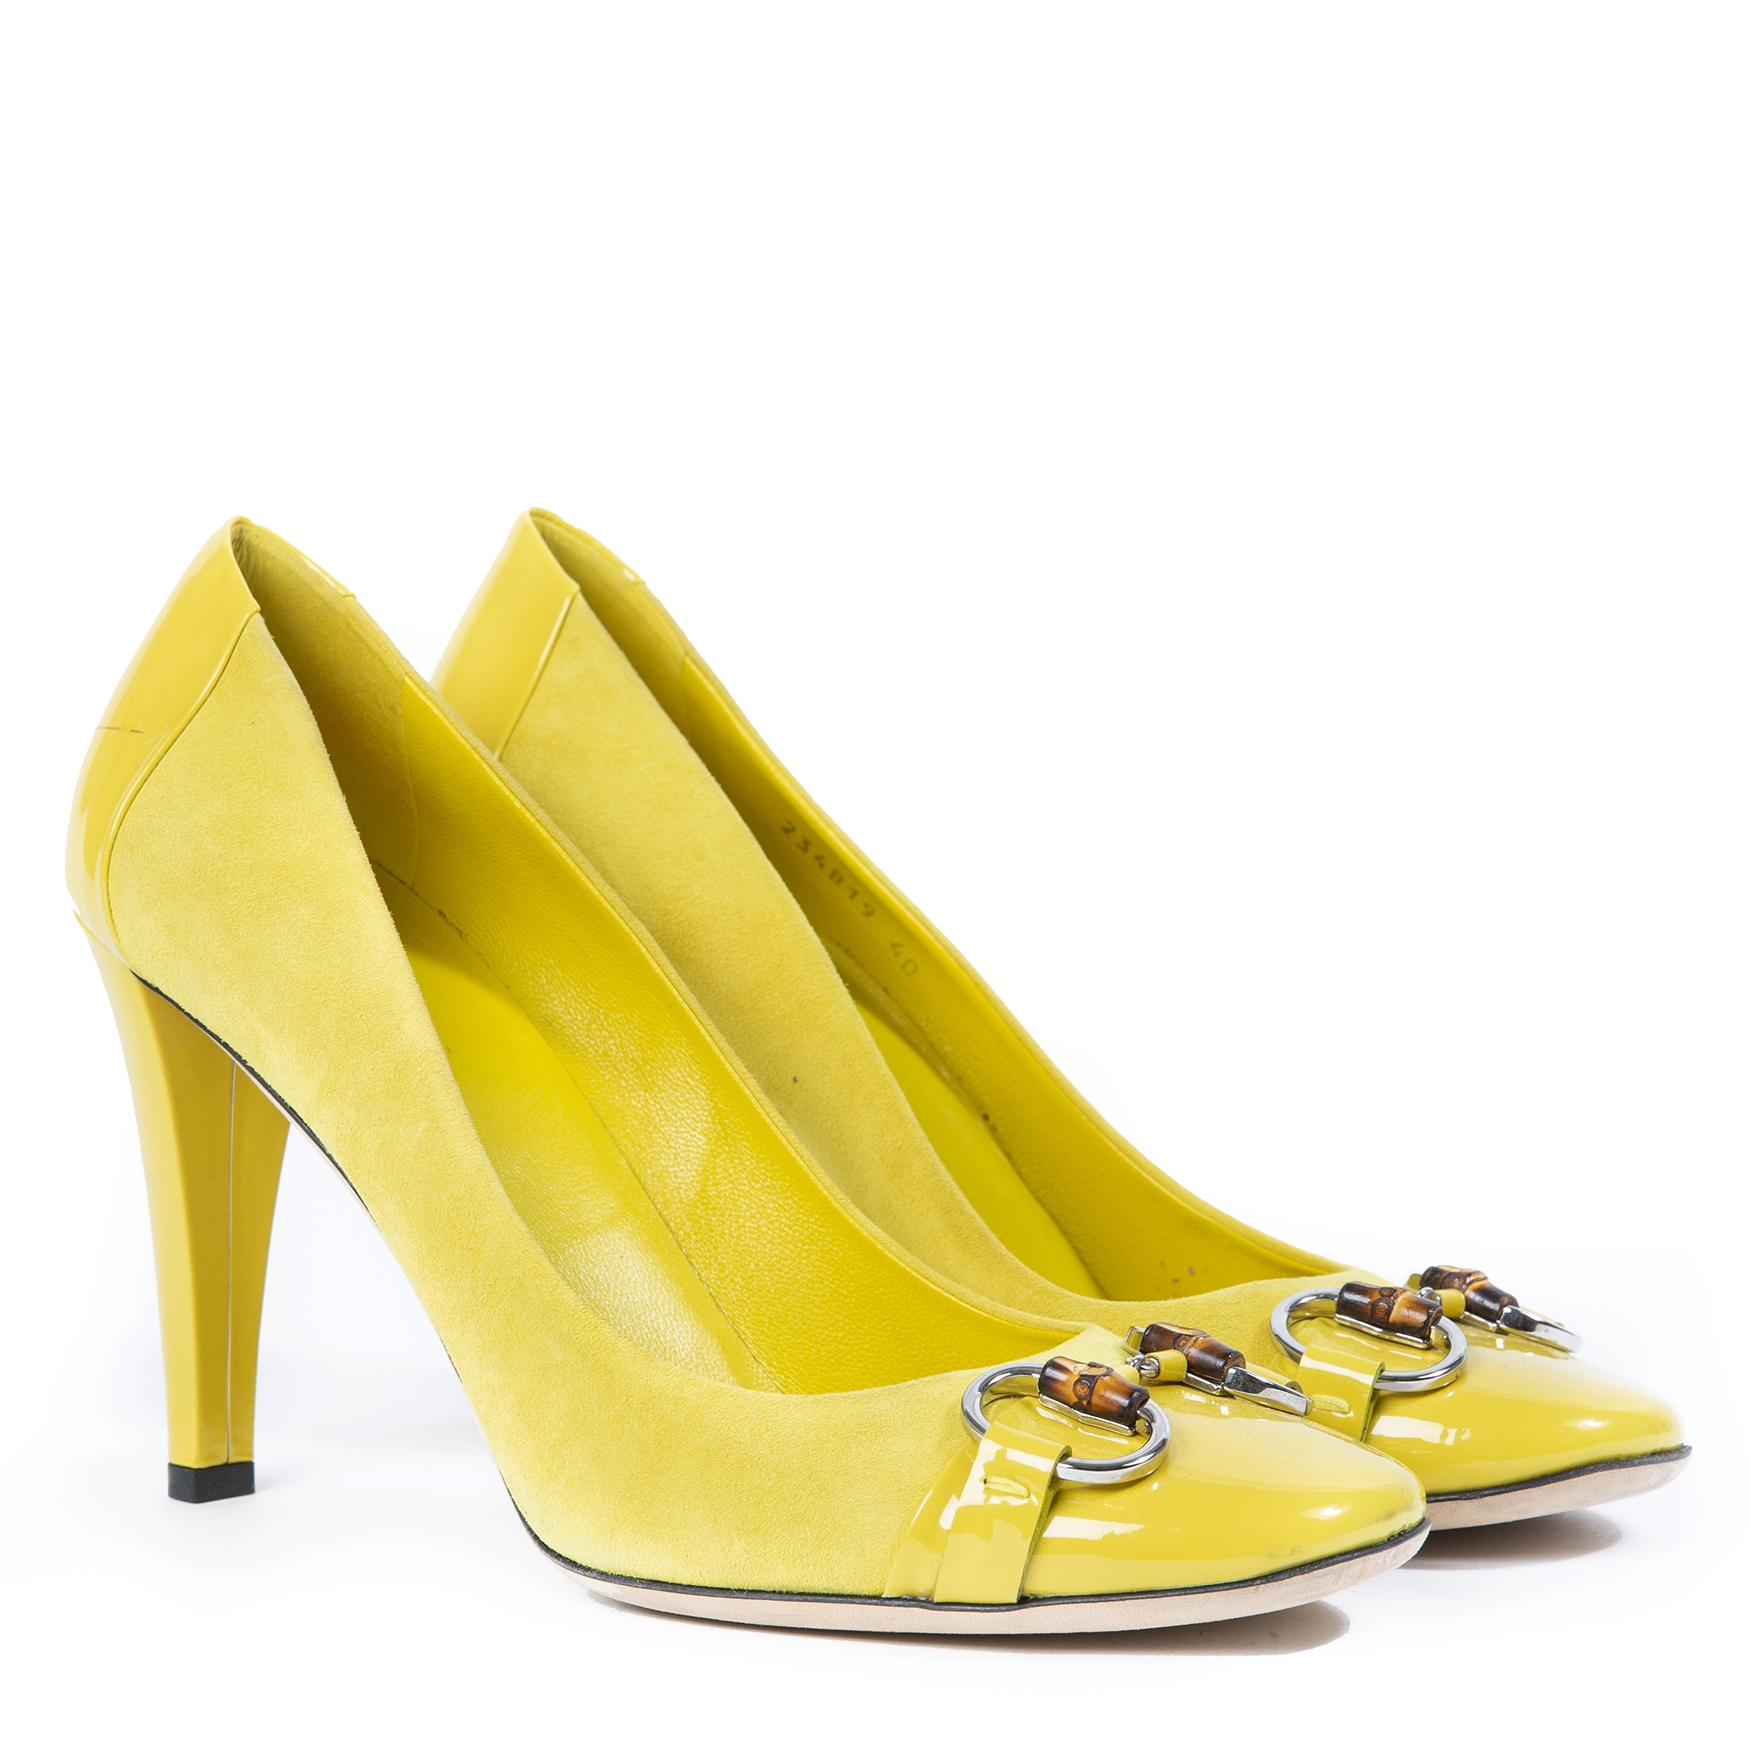 Gucci Yellow Suede Horsebit Pumps - Size 40 now online at labellov vintage fashion webshop belgium